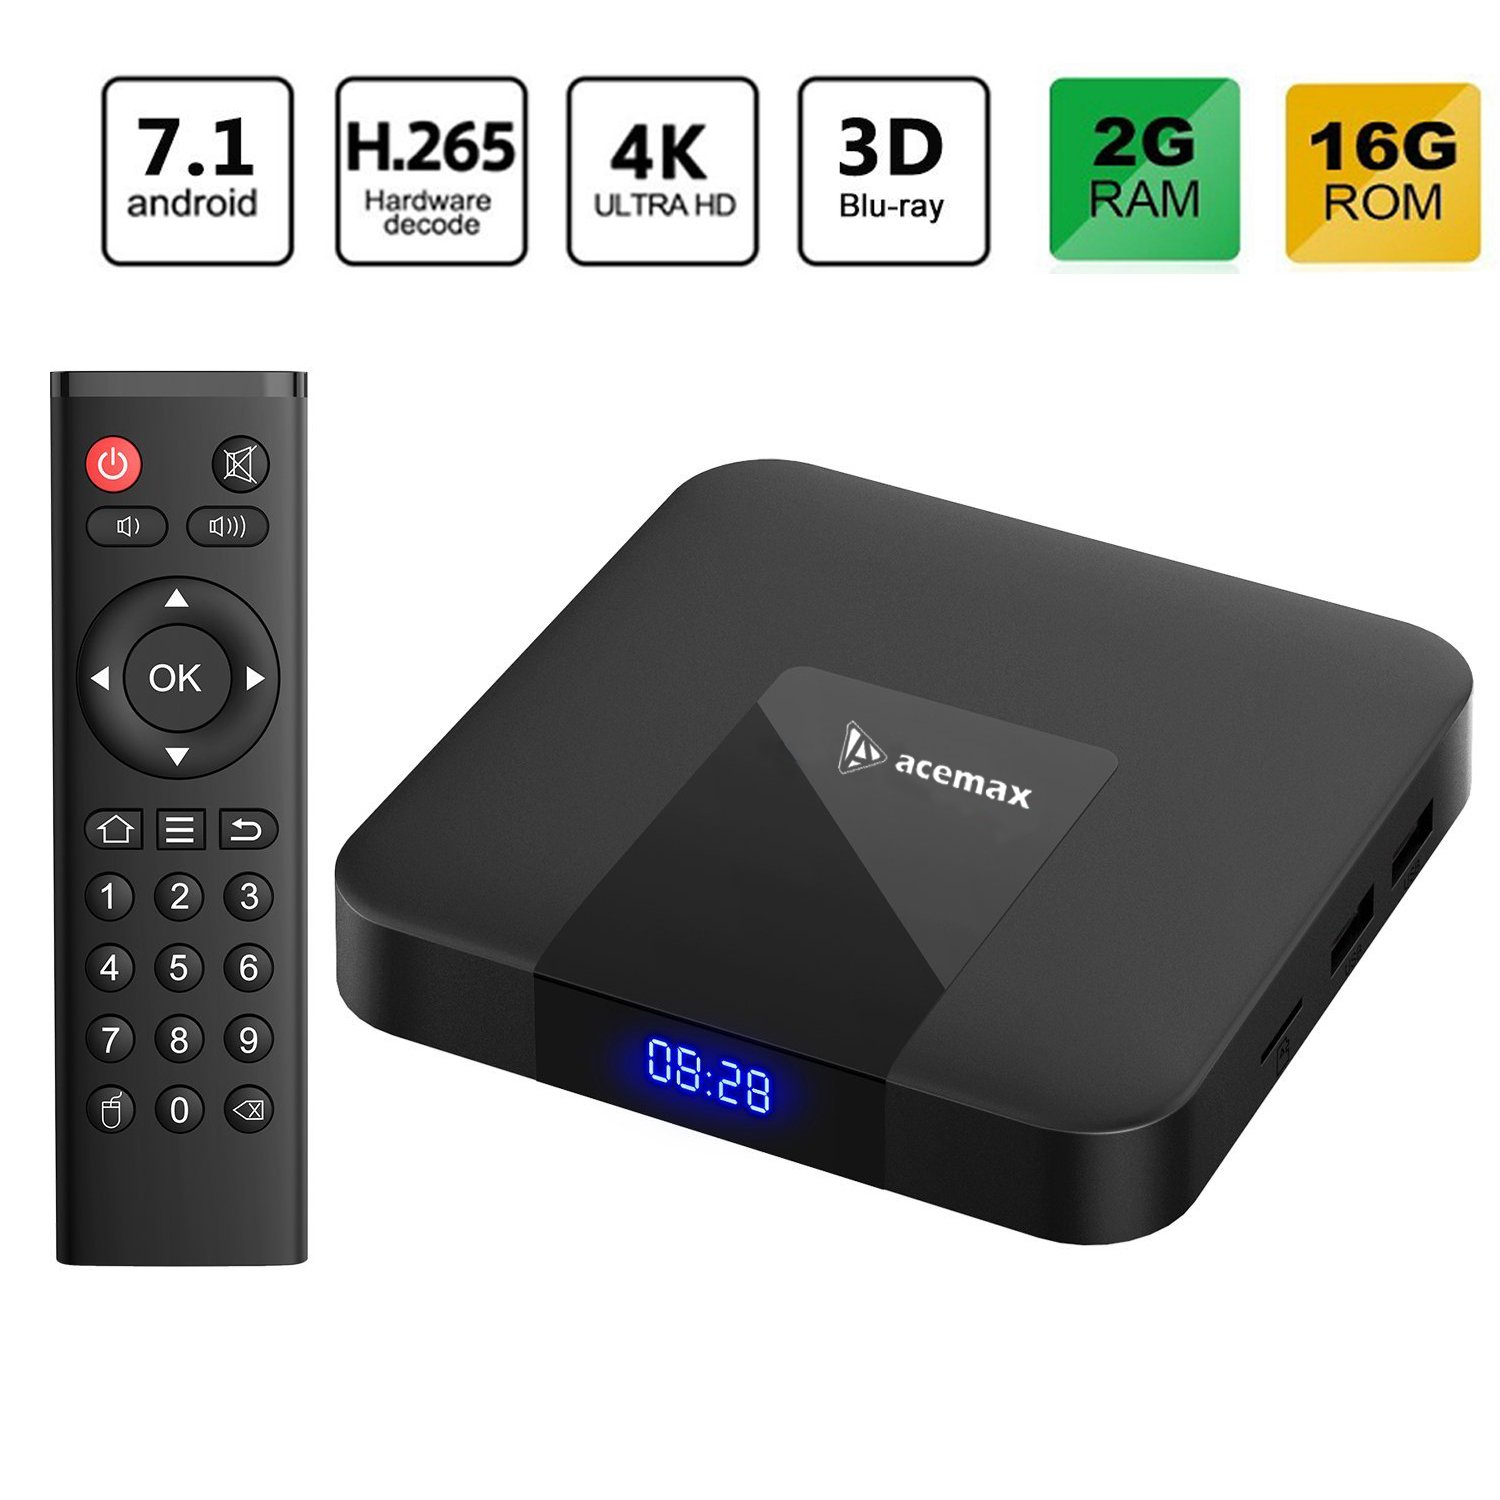 2018 Latest ACEMAX Amlogic Quad Core Android 7.1 TV Box 64Bit Processor 3D 4K H.265 The Future of Television [2GB/16GB] Makes Your TV a Smart TV